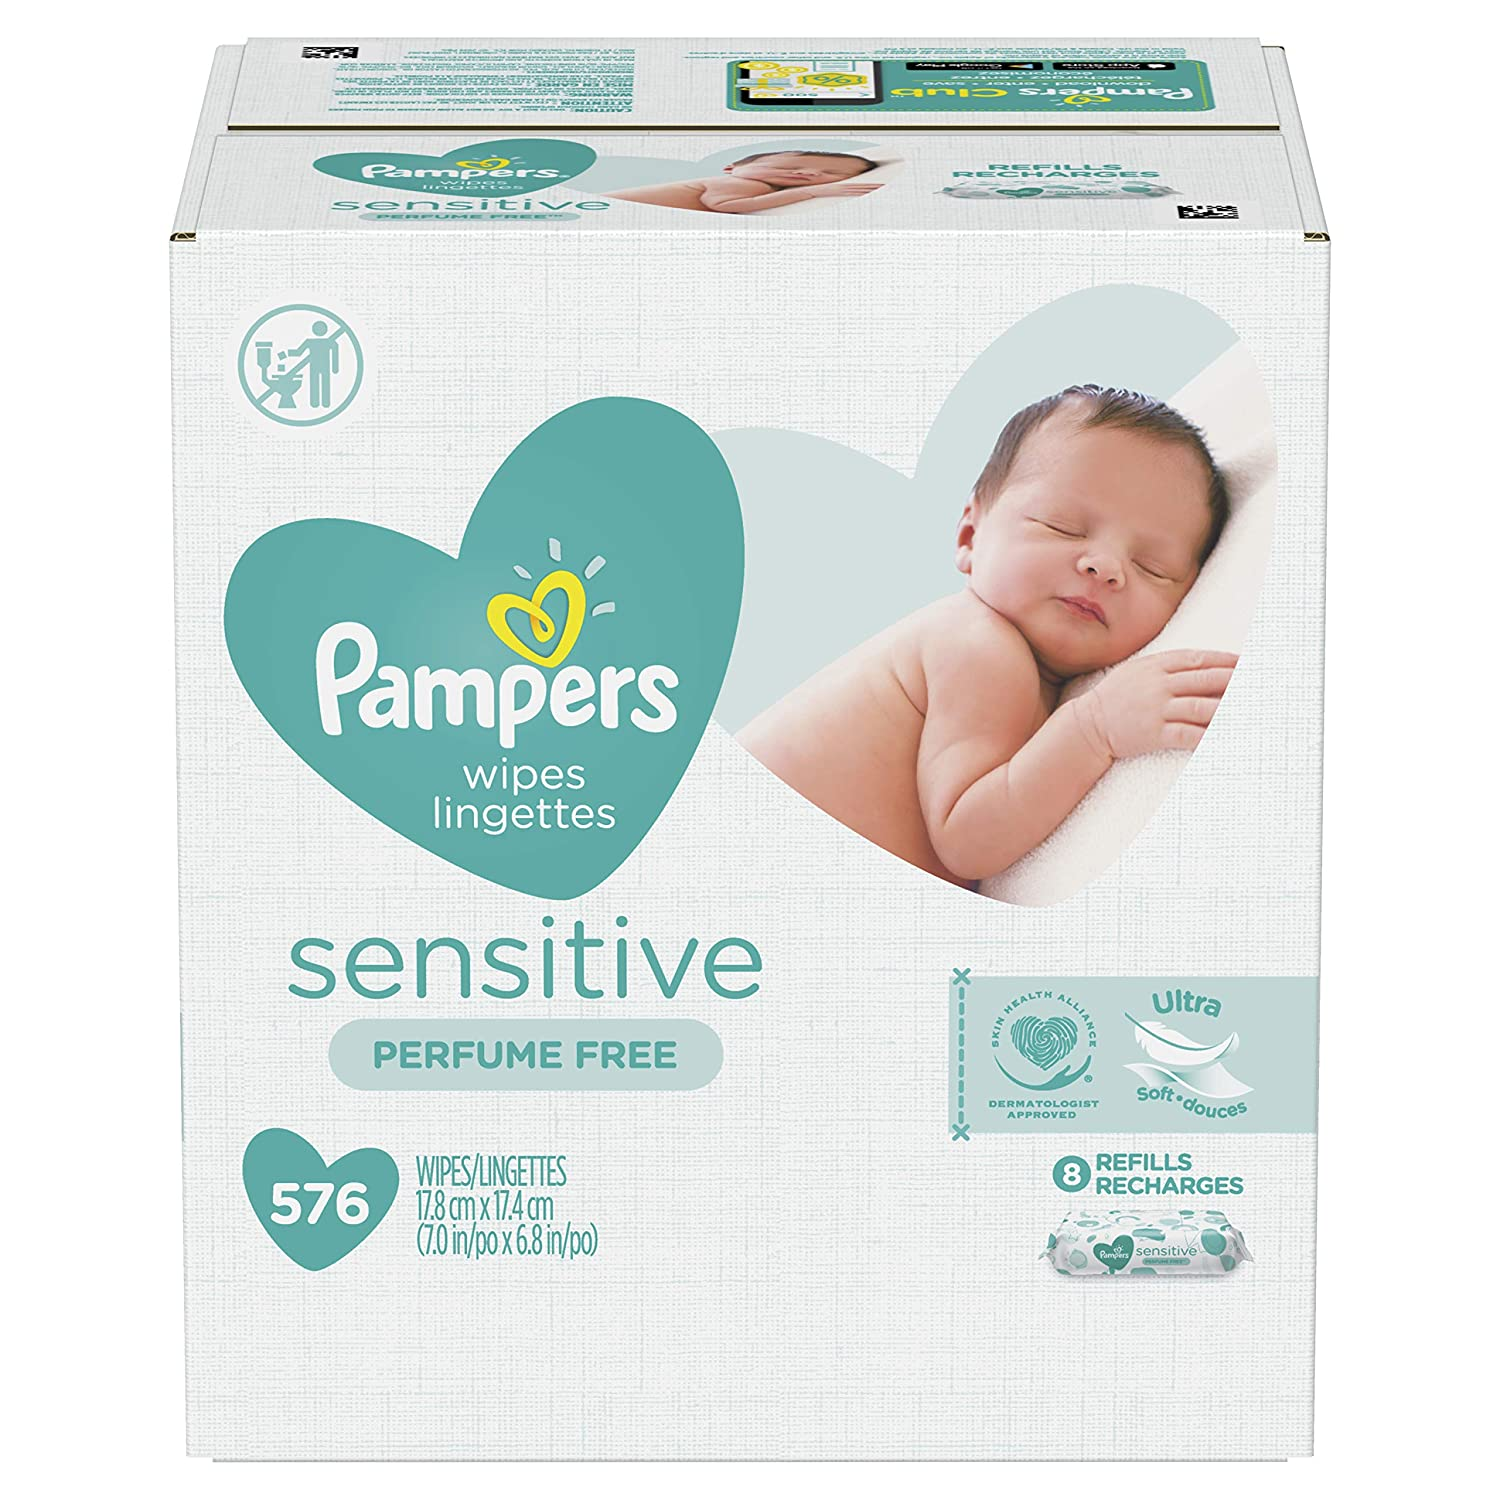 Pampers sensitive perfume free baby wipes